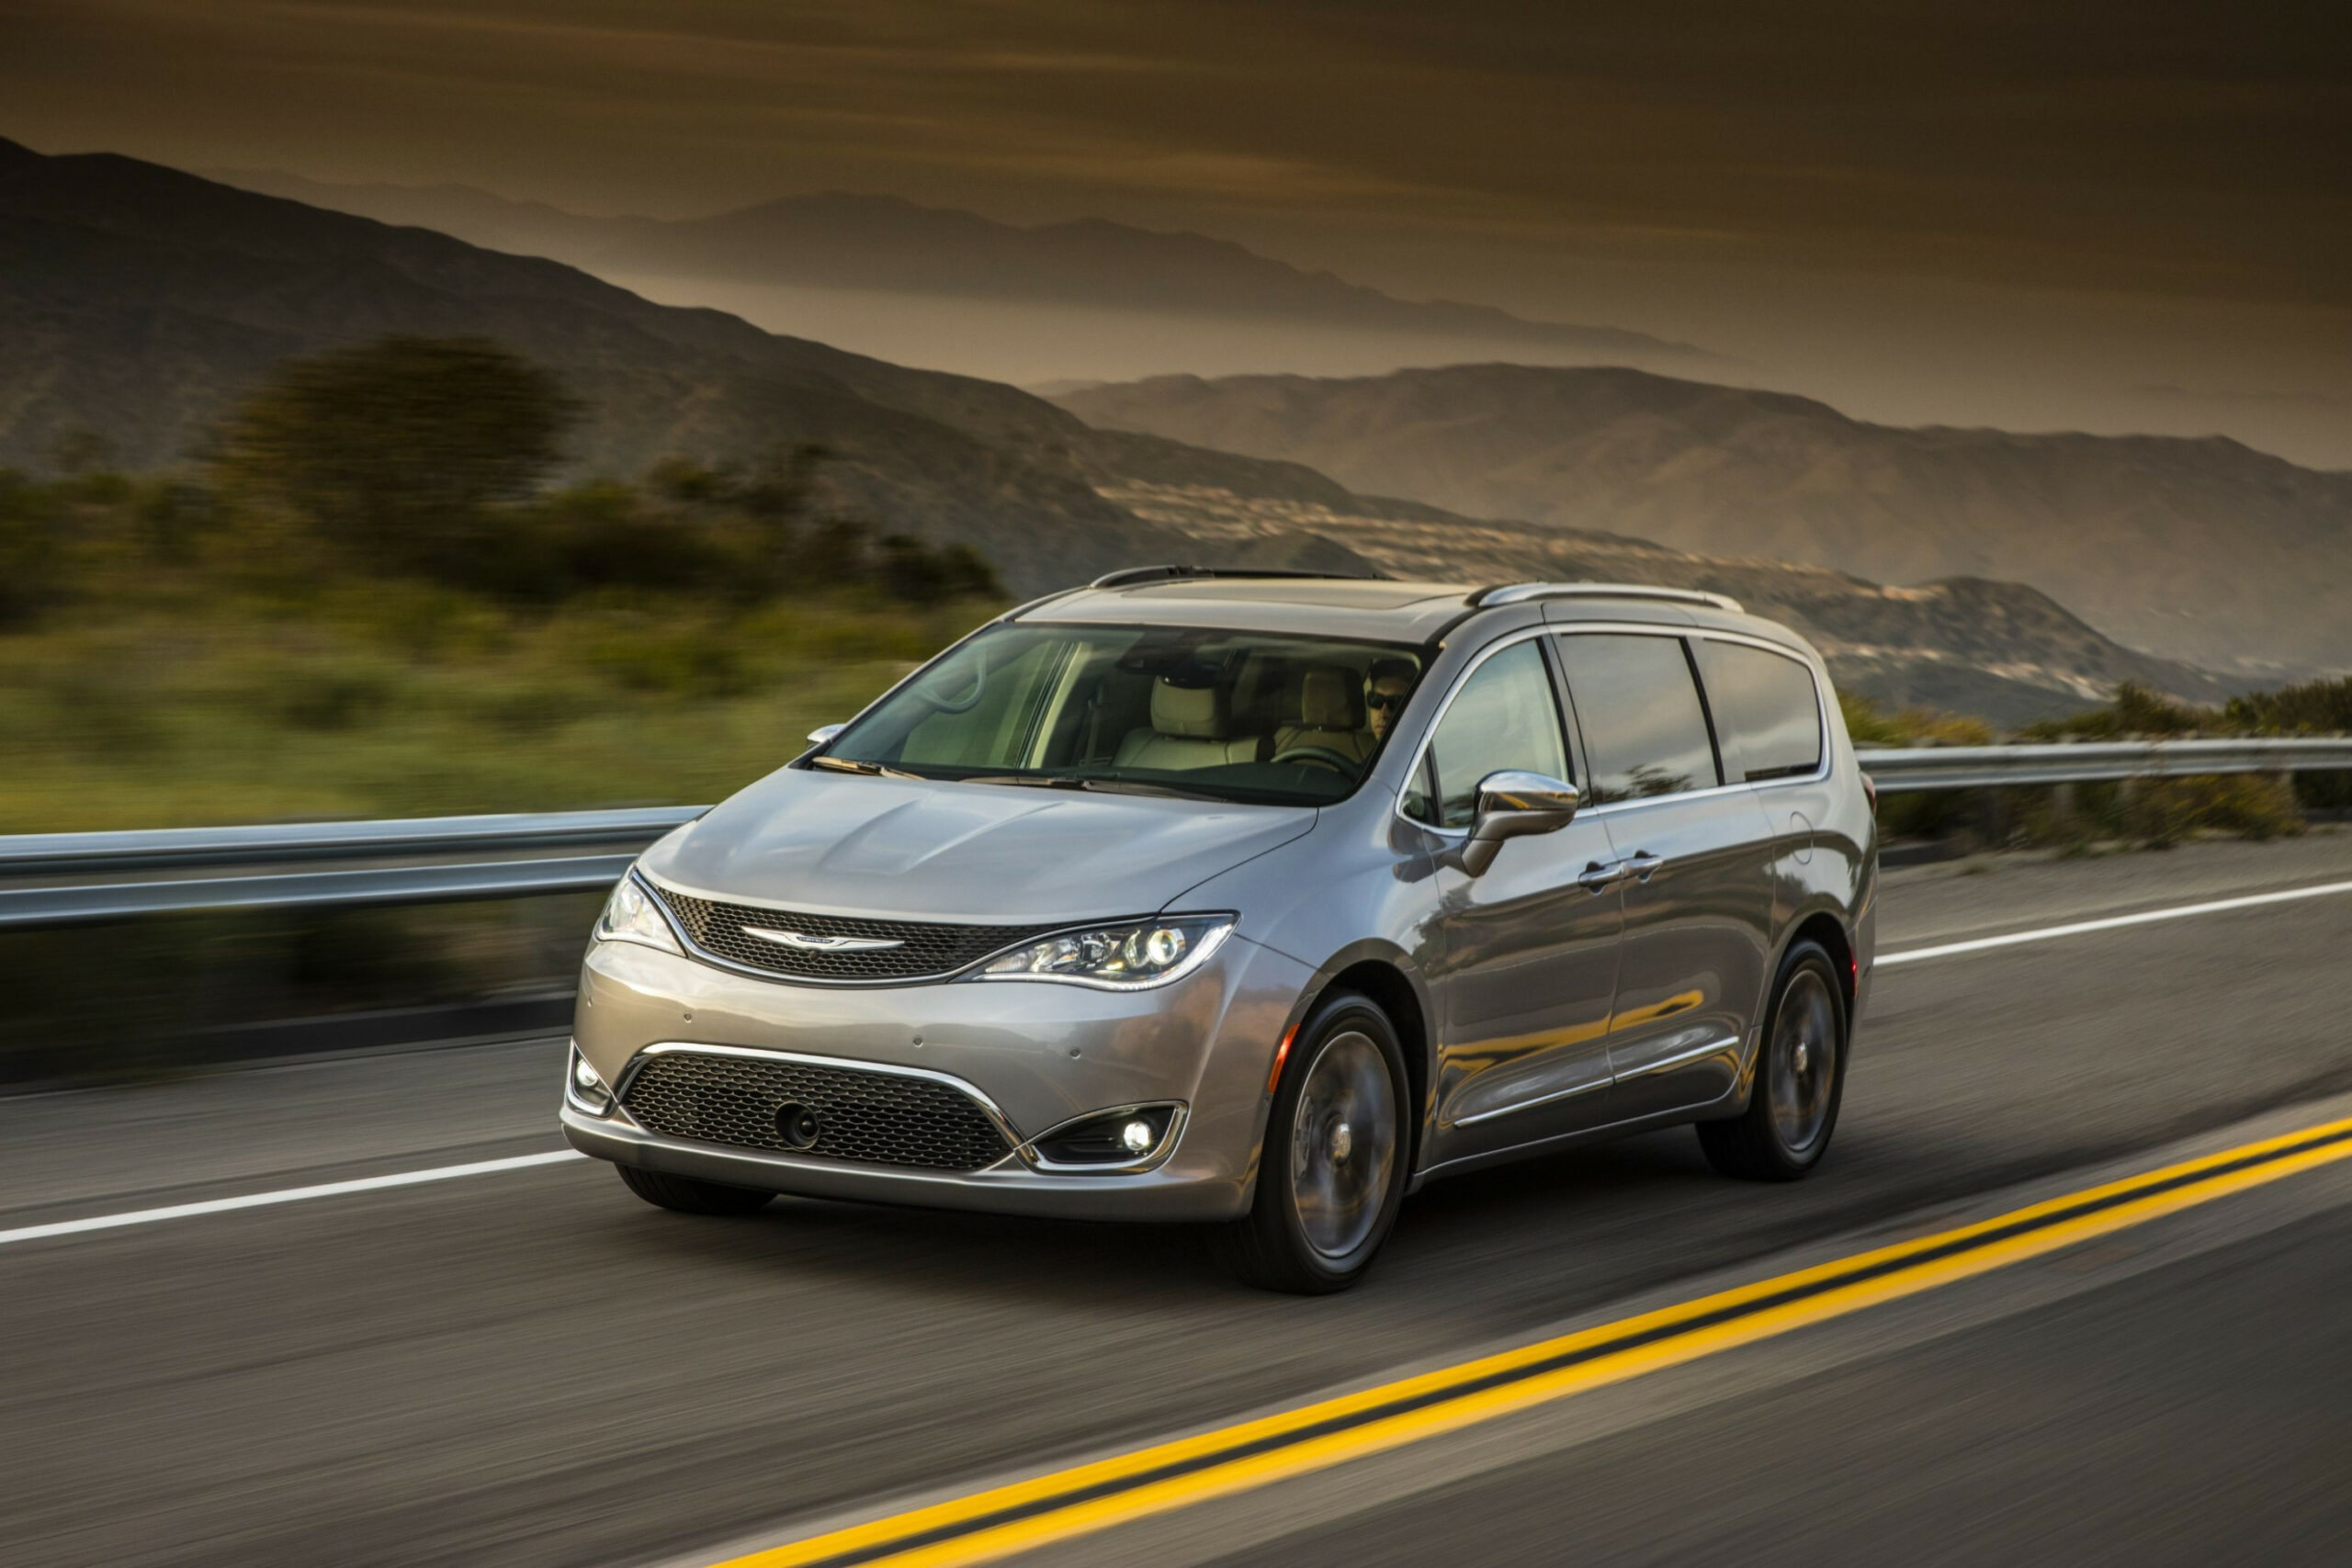 8 Chrysler Pacifica Review, Pricing, and Specs | 2020 Chrysler Pacifica